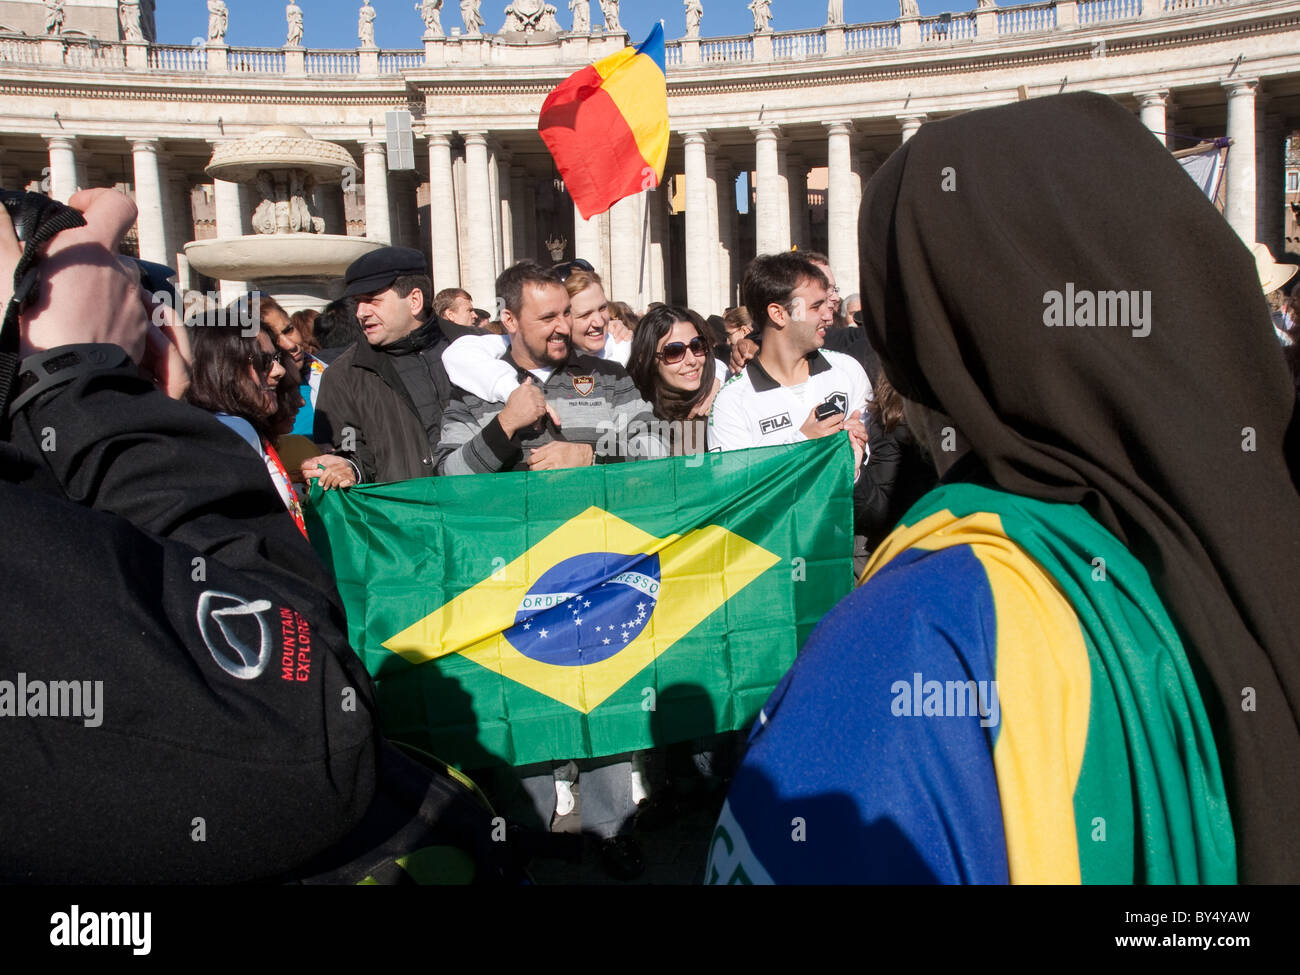 """people crowd for """"Migrant day"""" migrant celebration in Vatican St Peter's square Brazil Brazilian flag people community Stock Photo"""